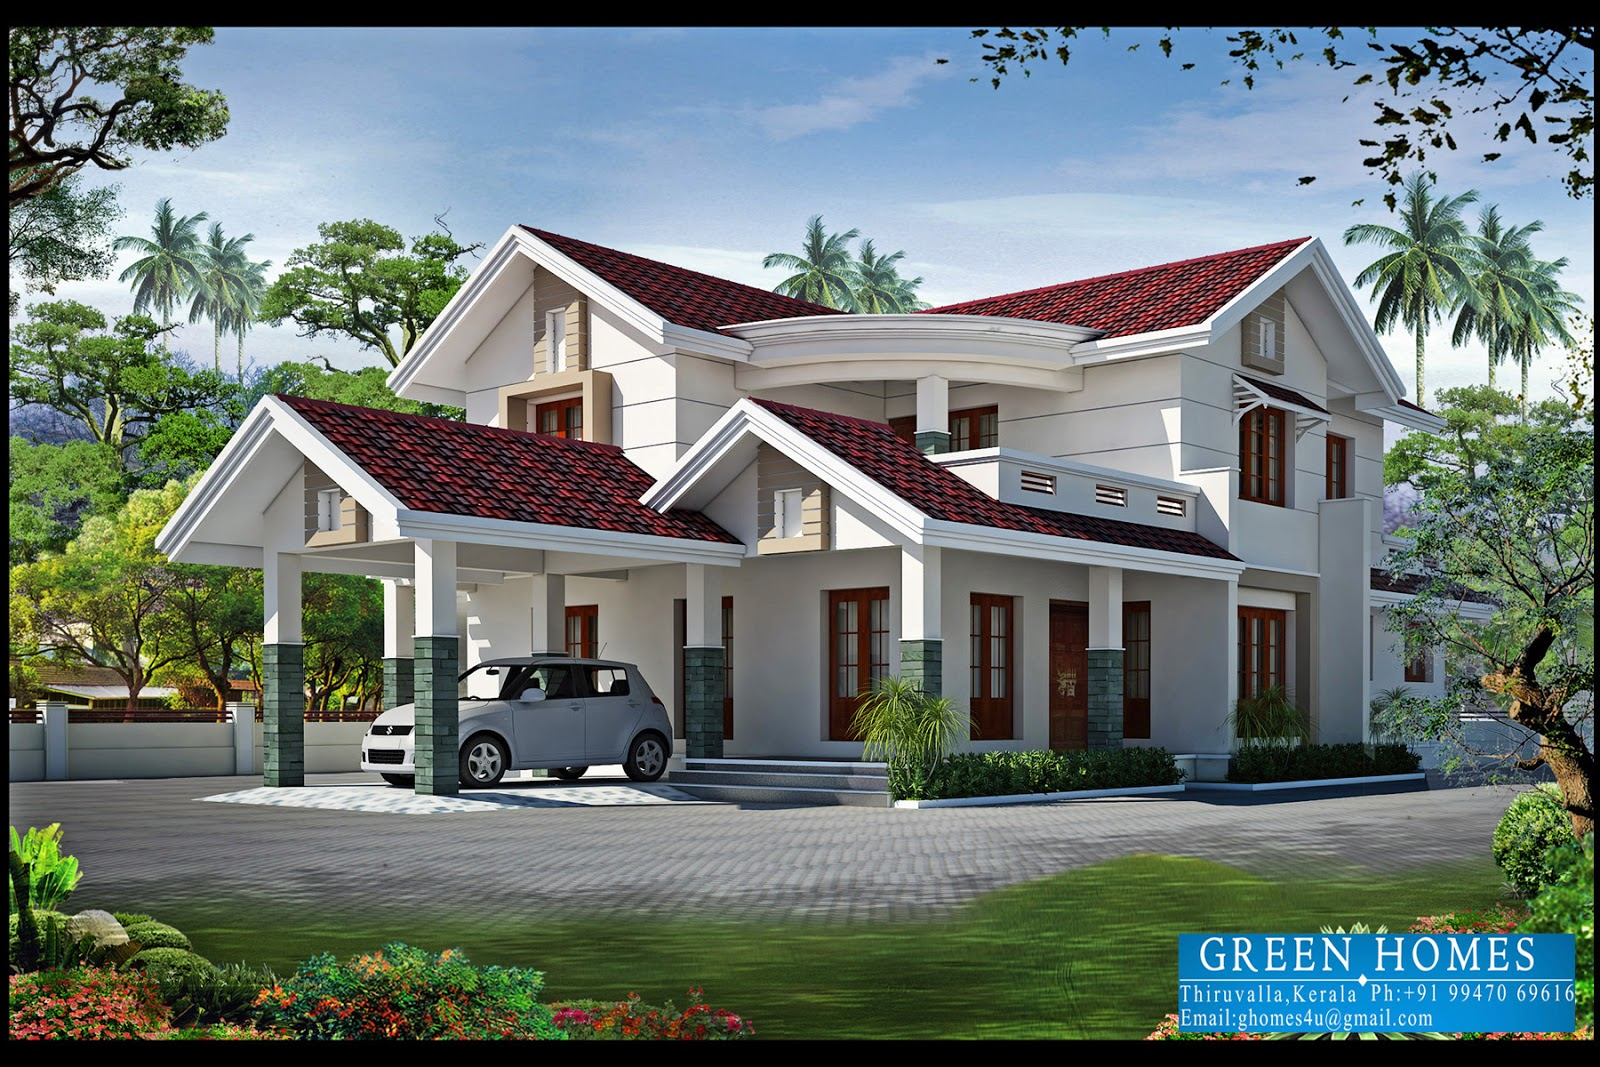 Green homes 4bhk kerala home design 2550 for Kerala house construction plans